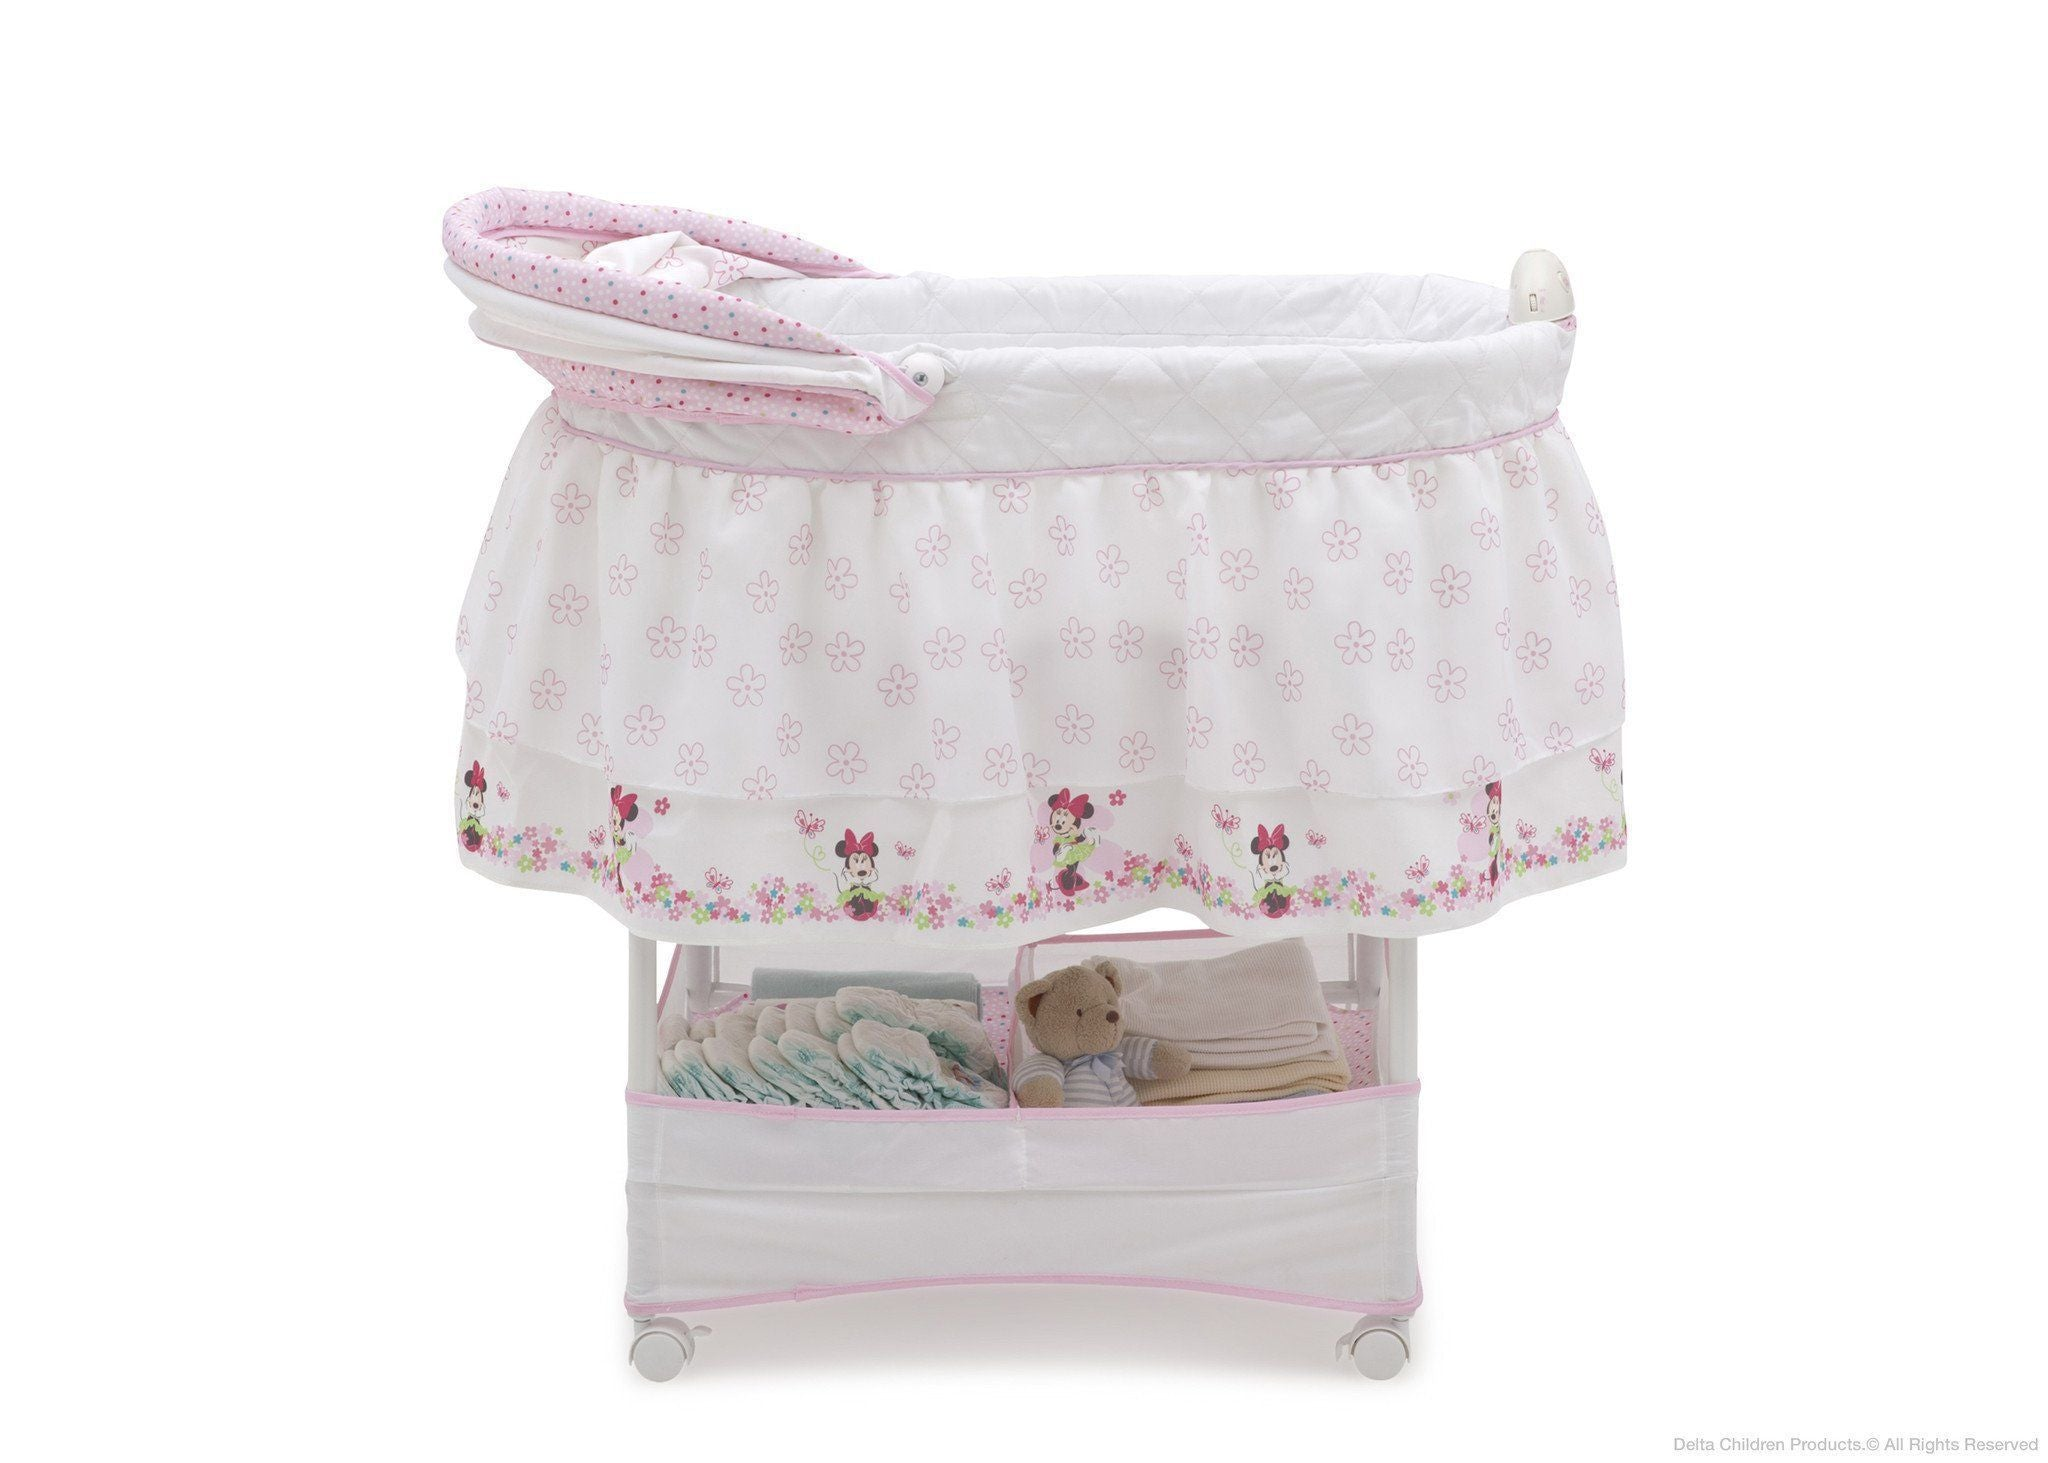 Delta Children Minnie Bows and Butterflies (695) Gliding Bassinet (27202), Full Right Side View with Canopy Option 1 h2h